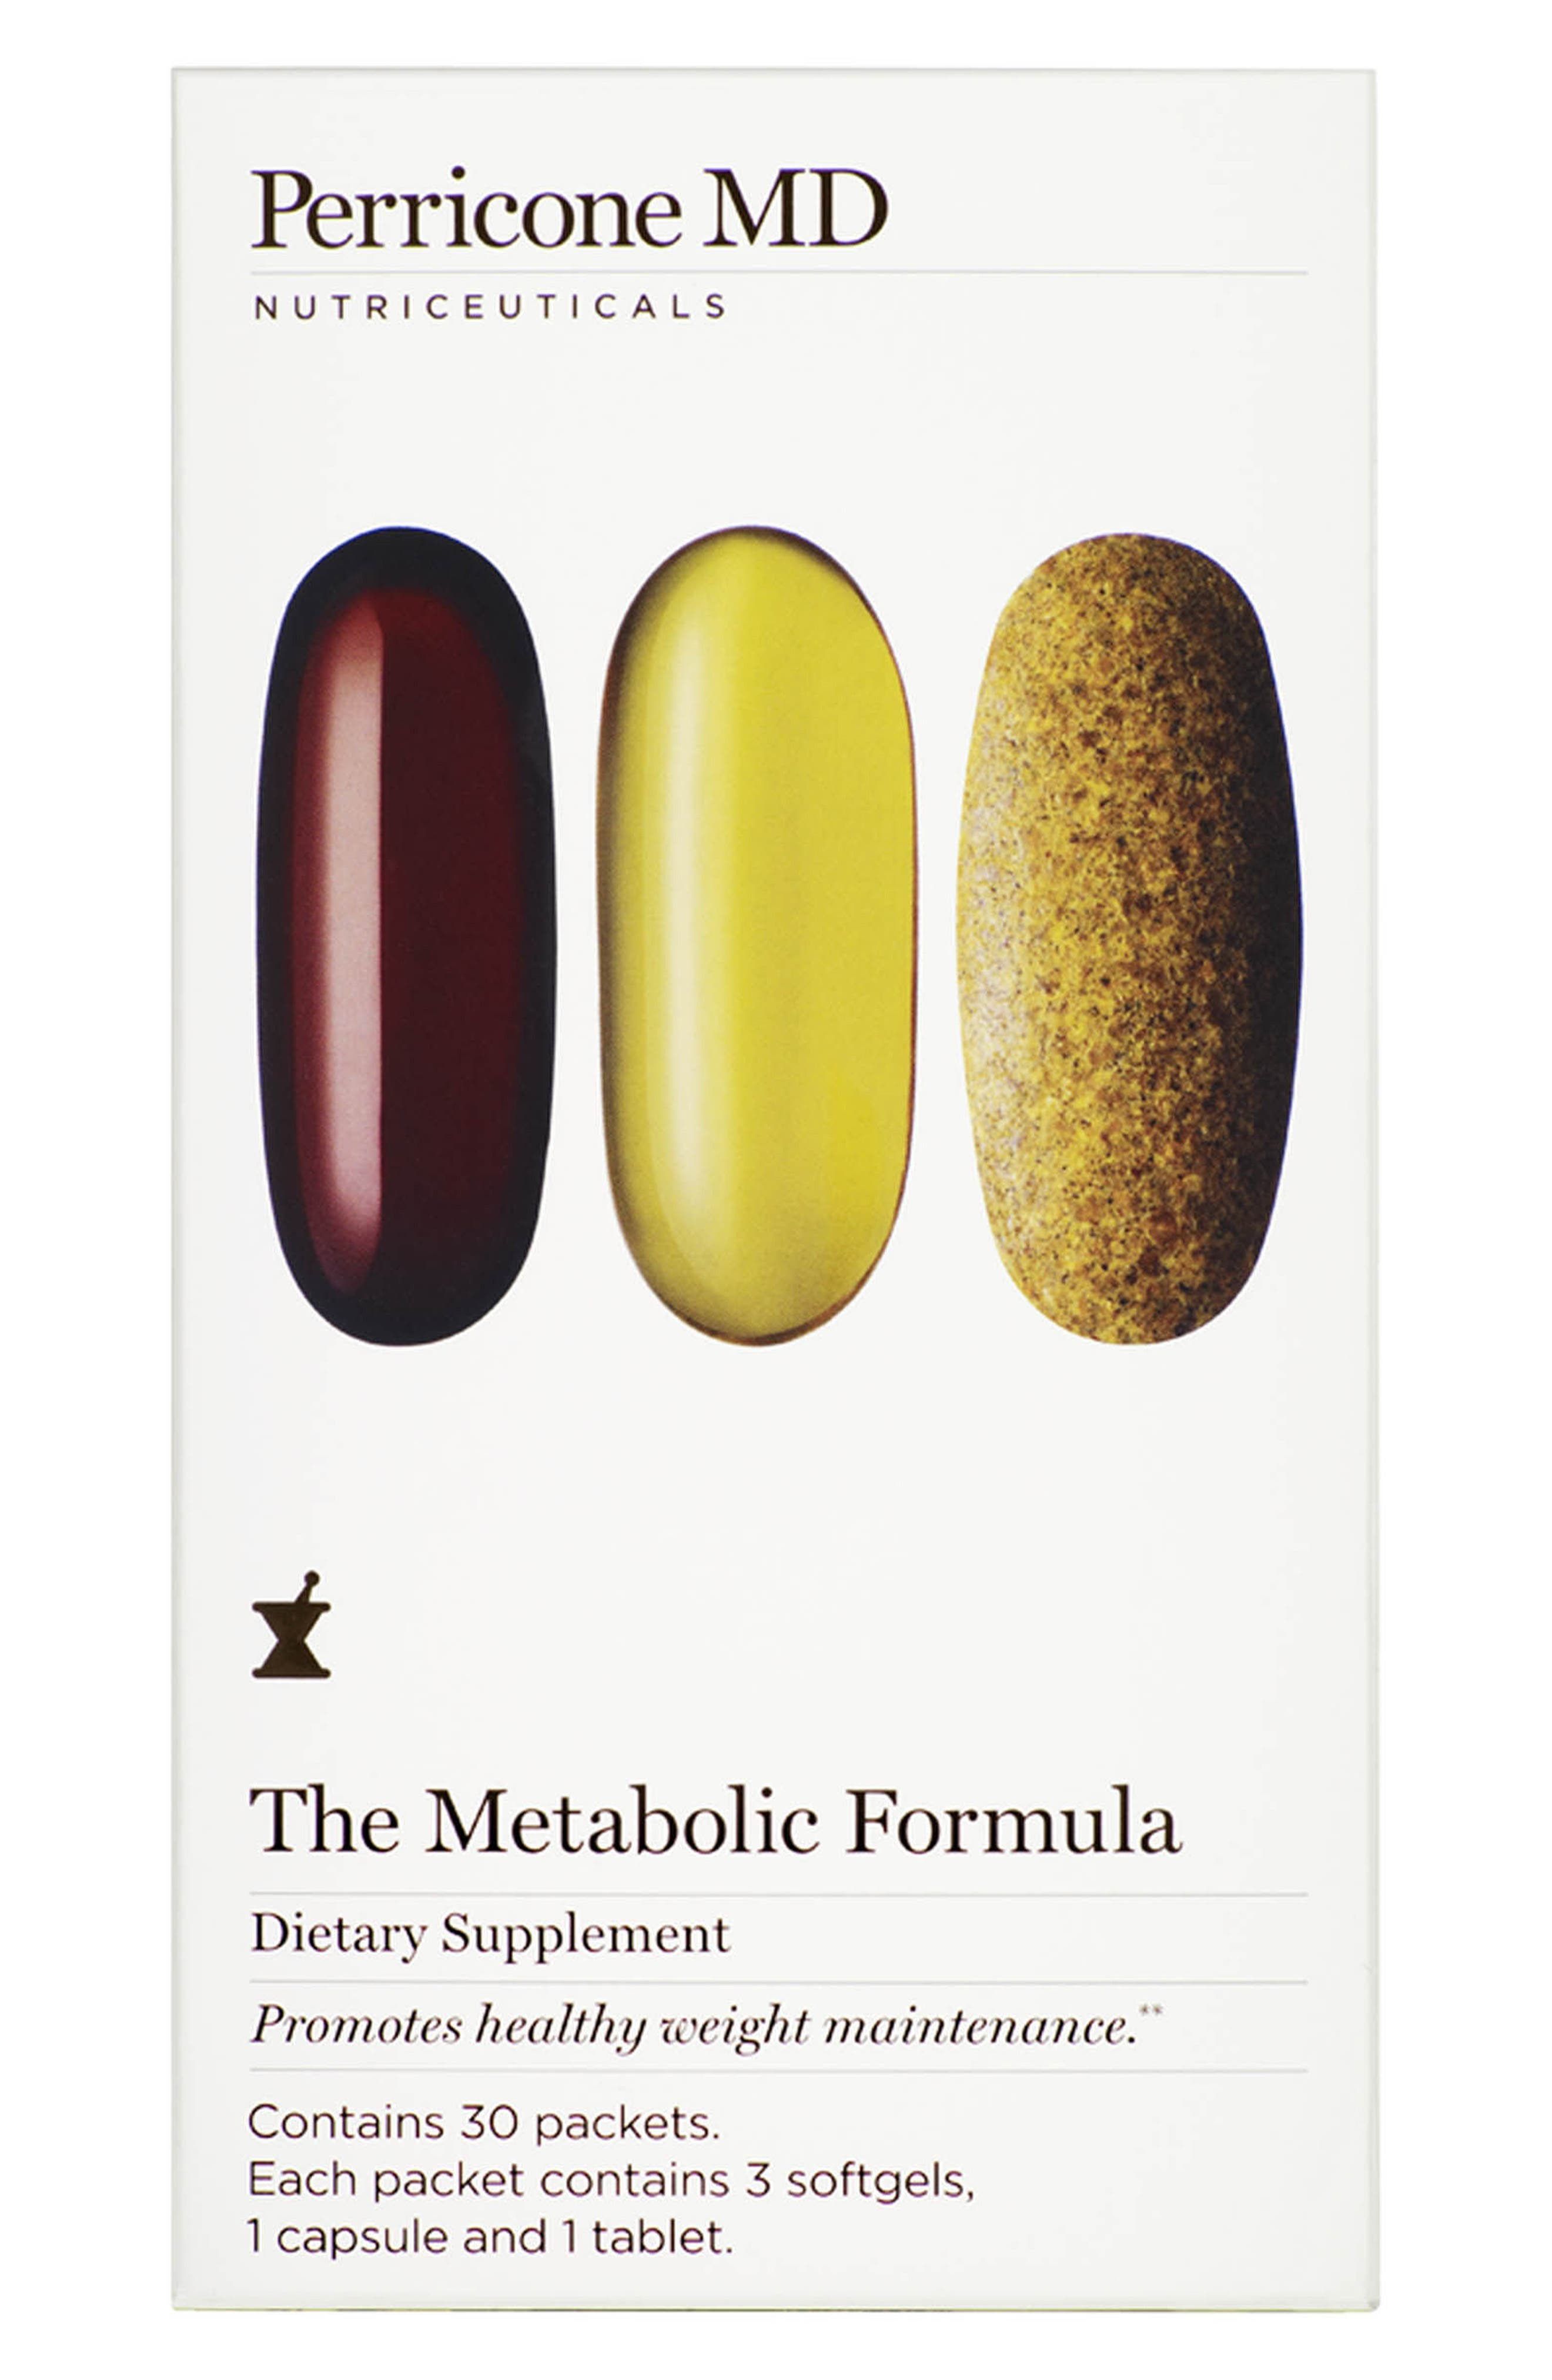 Alternate Image 1 Selected - Perricone MD 'The Metabolic Formula' Dietary Supplement